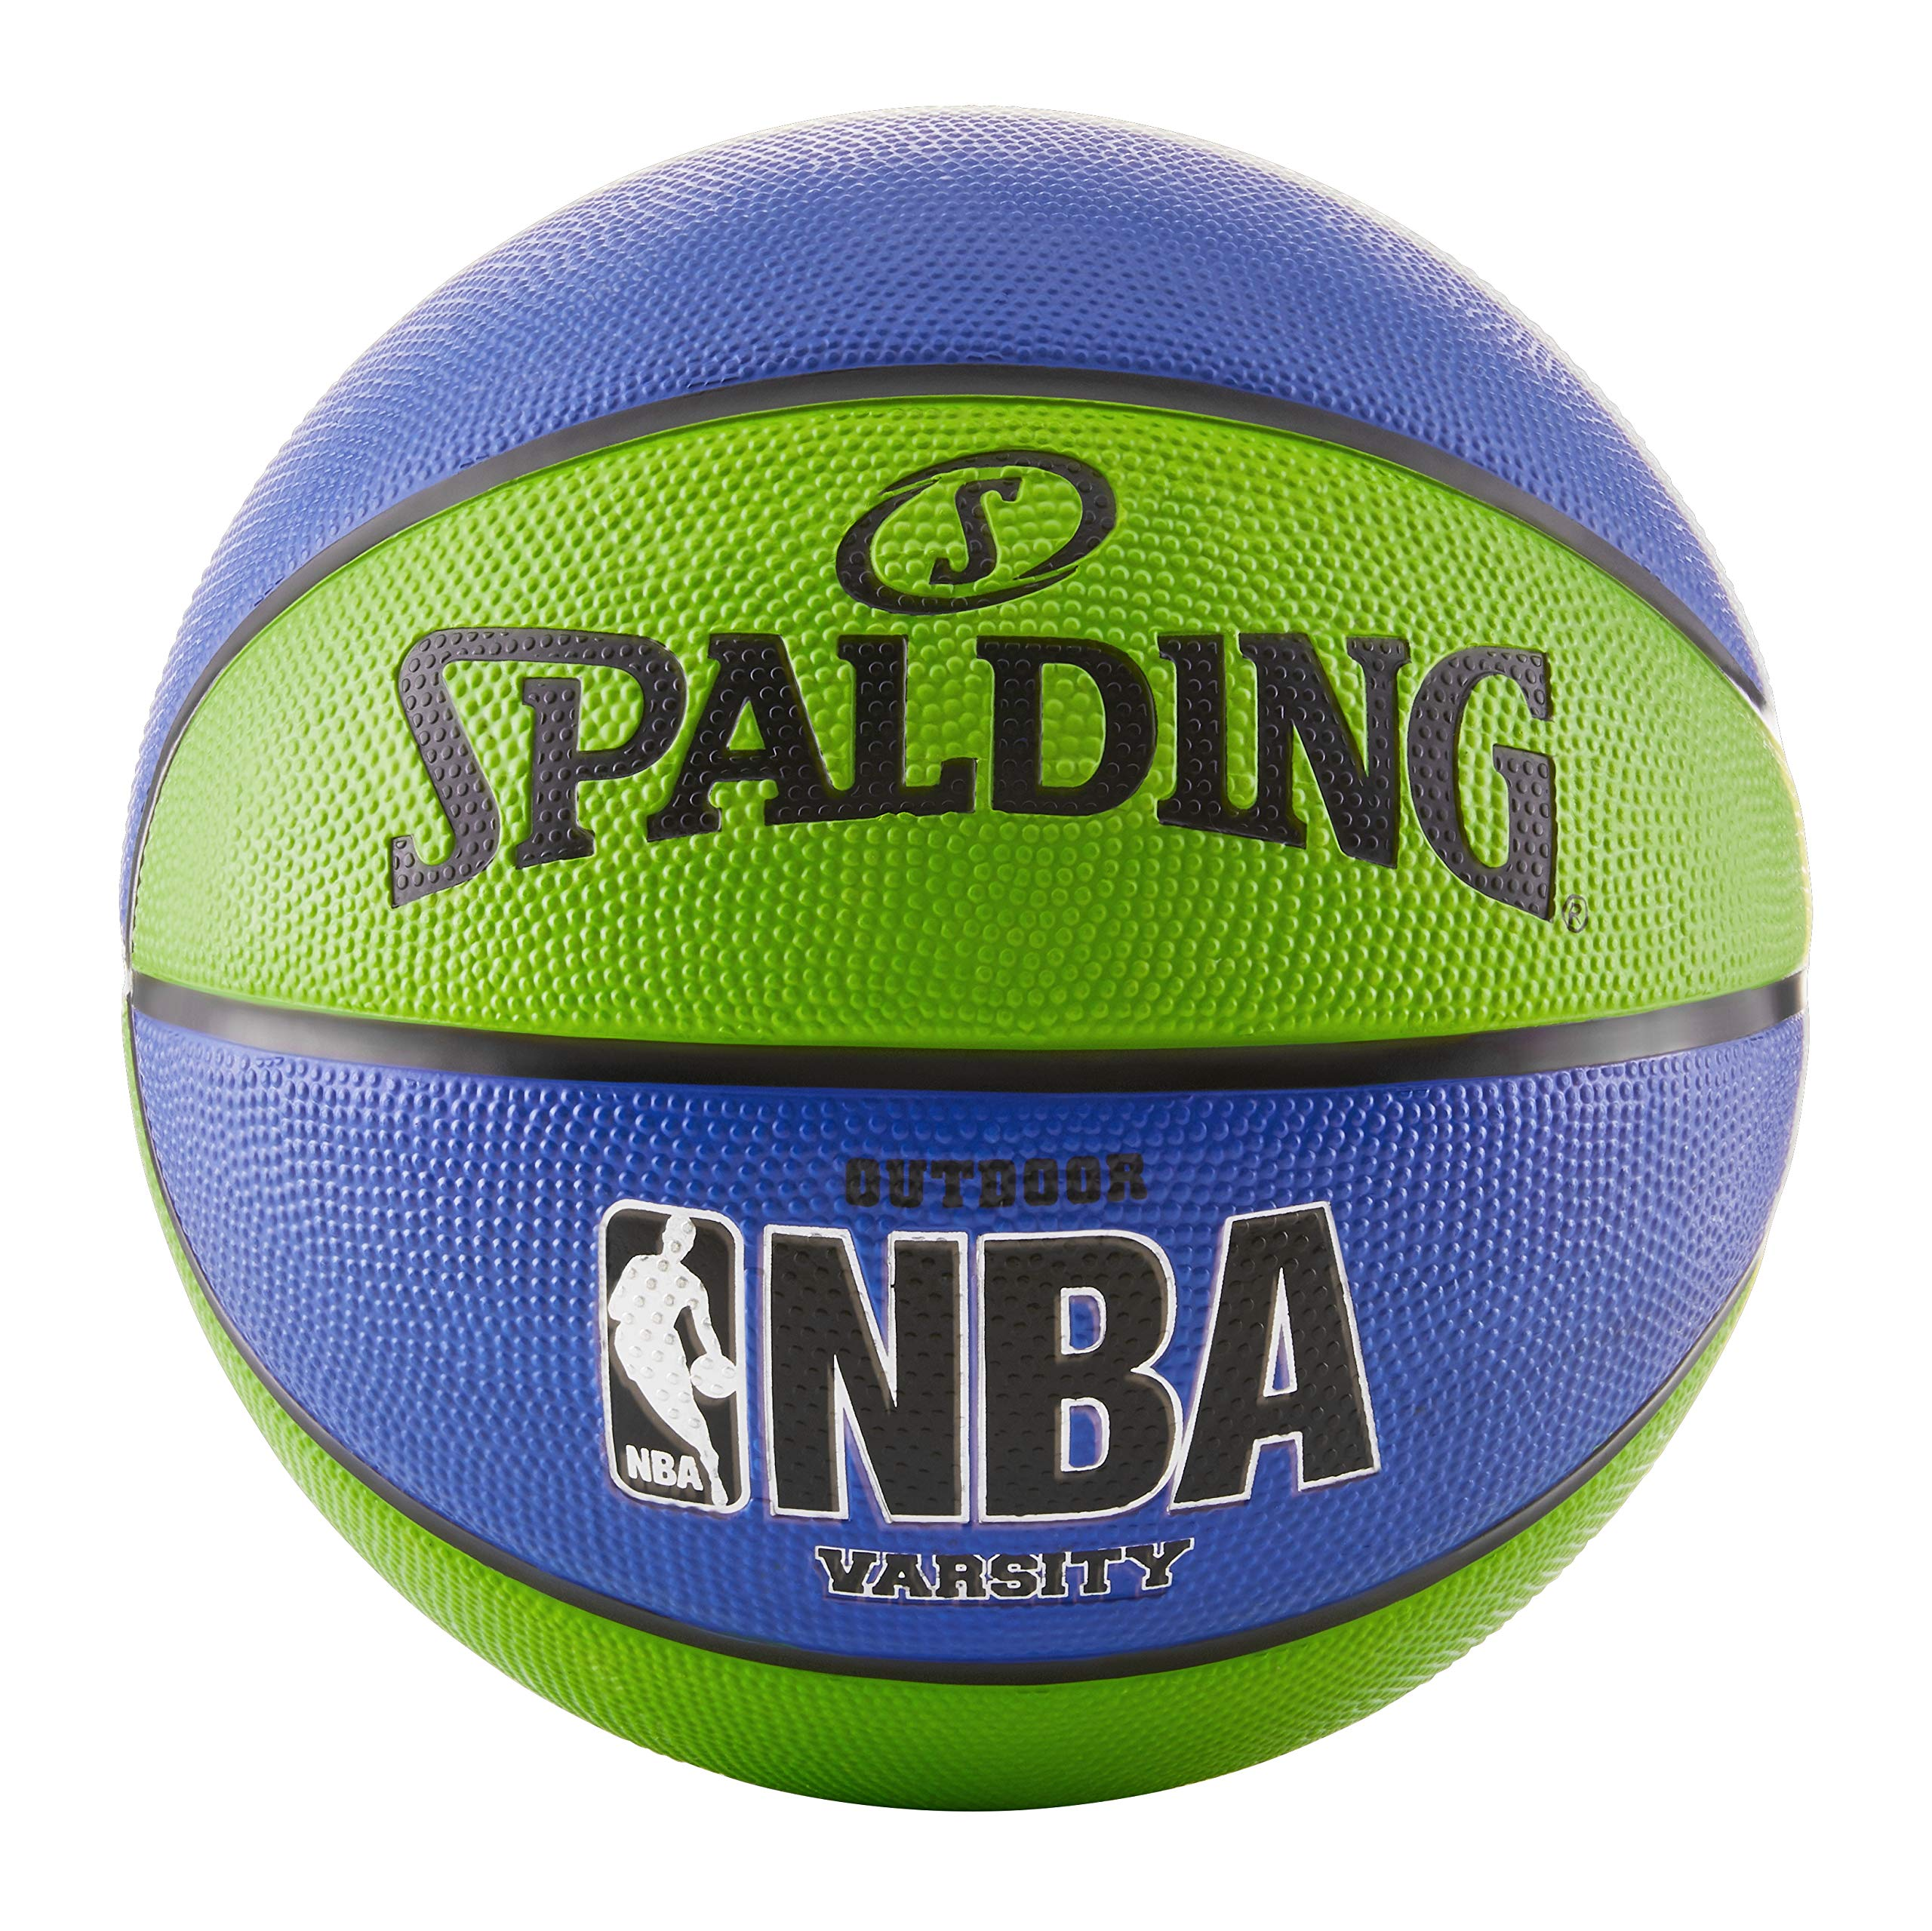 Spalding Varsity Outdoor Rubber Basketball